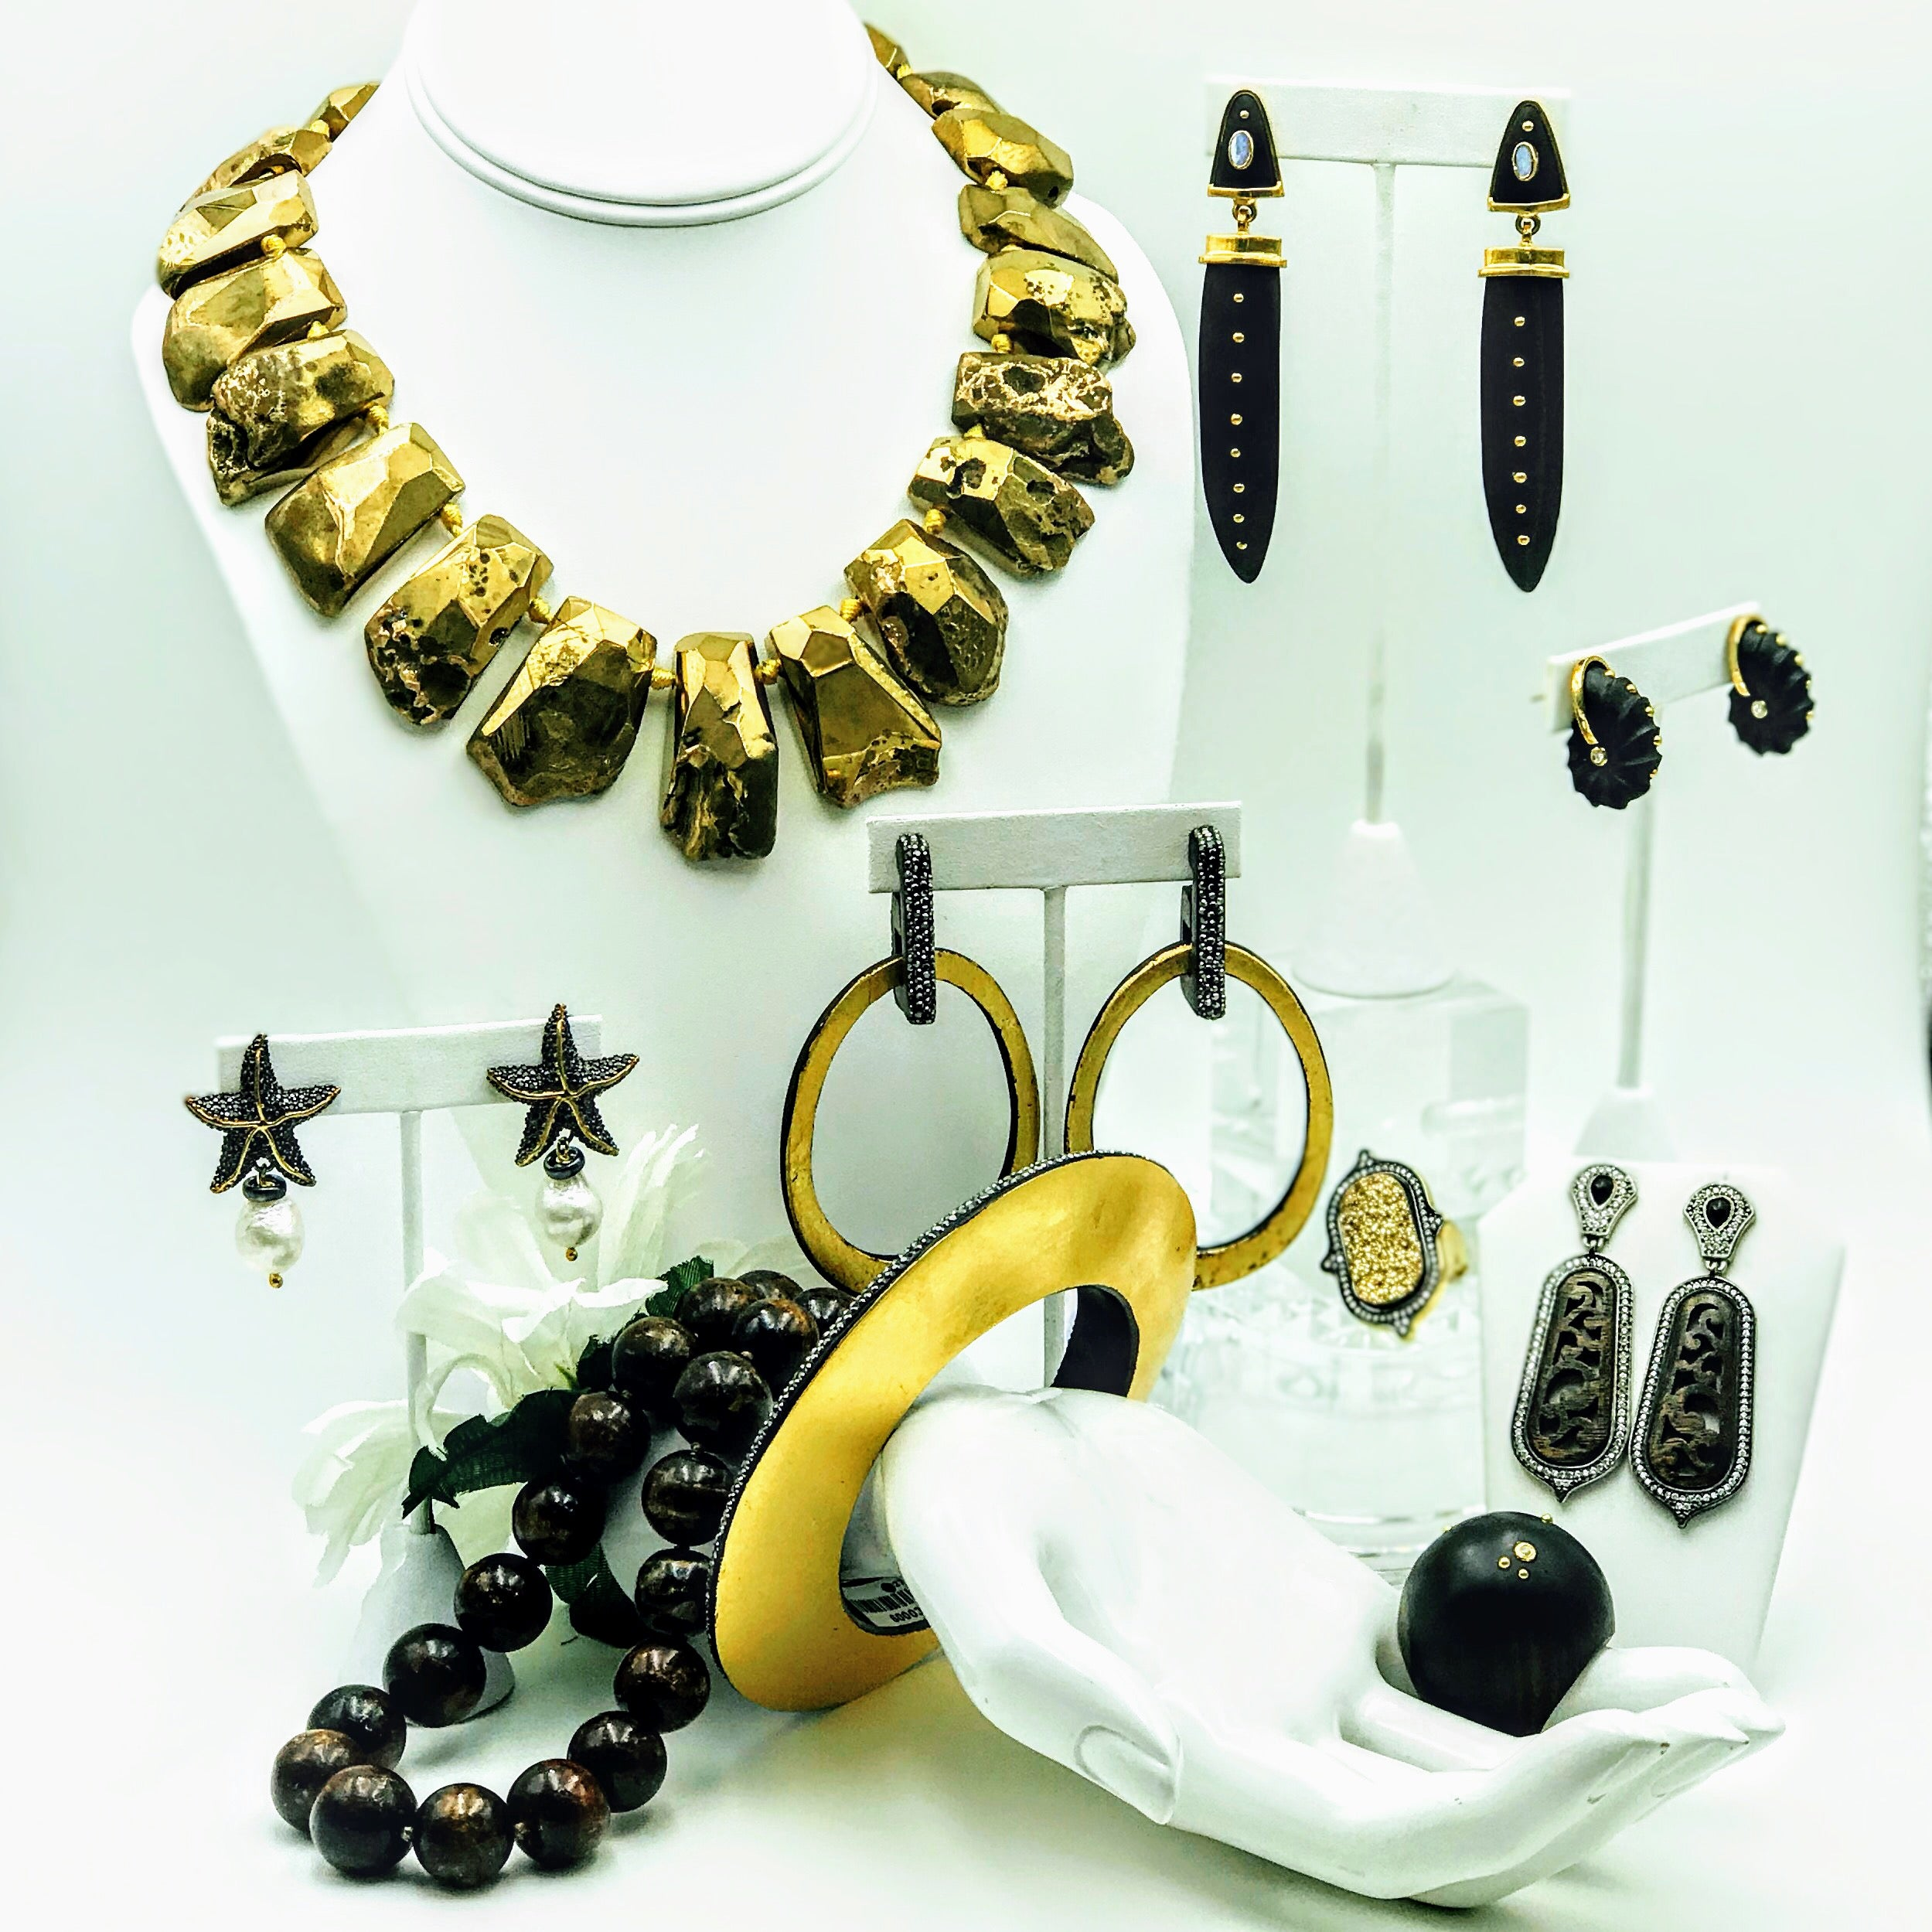 Beautiful Display at Key West Local Luxe Jewelry Store